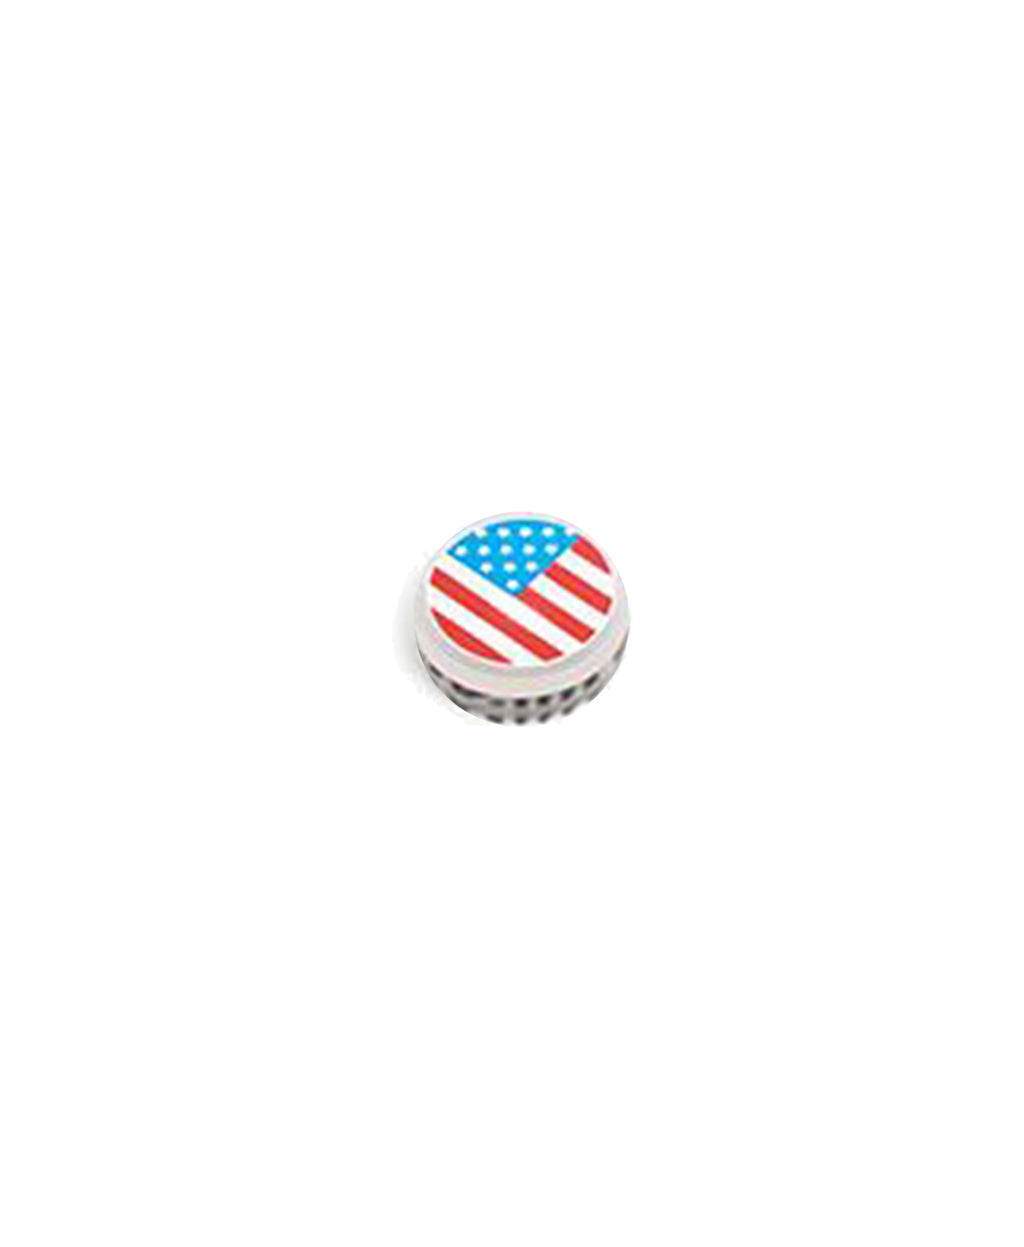 Tennis String Dampener - Star Spangled Banner